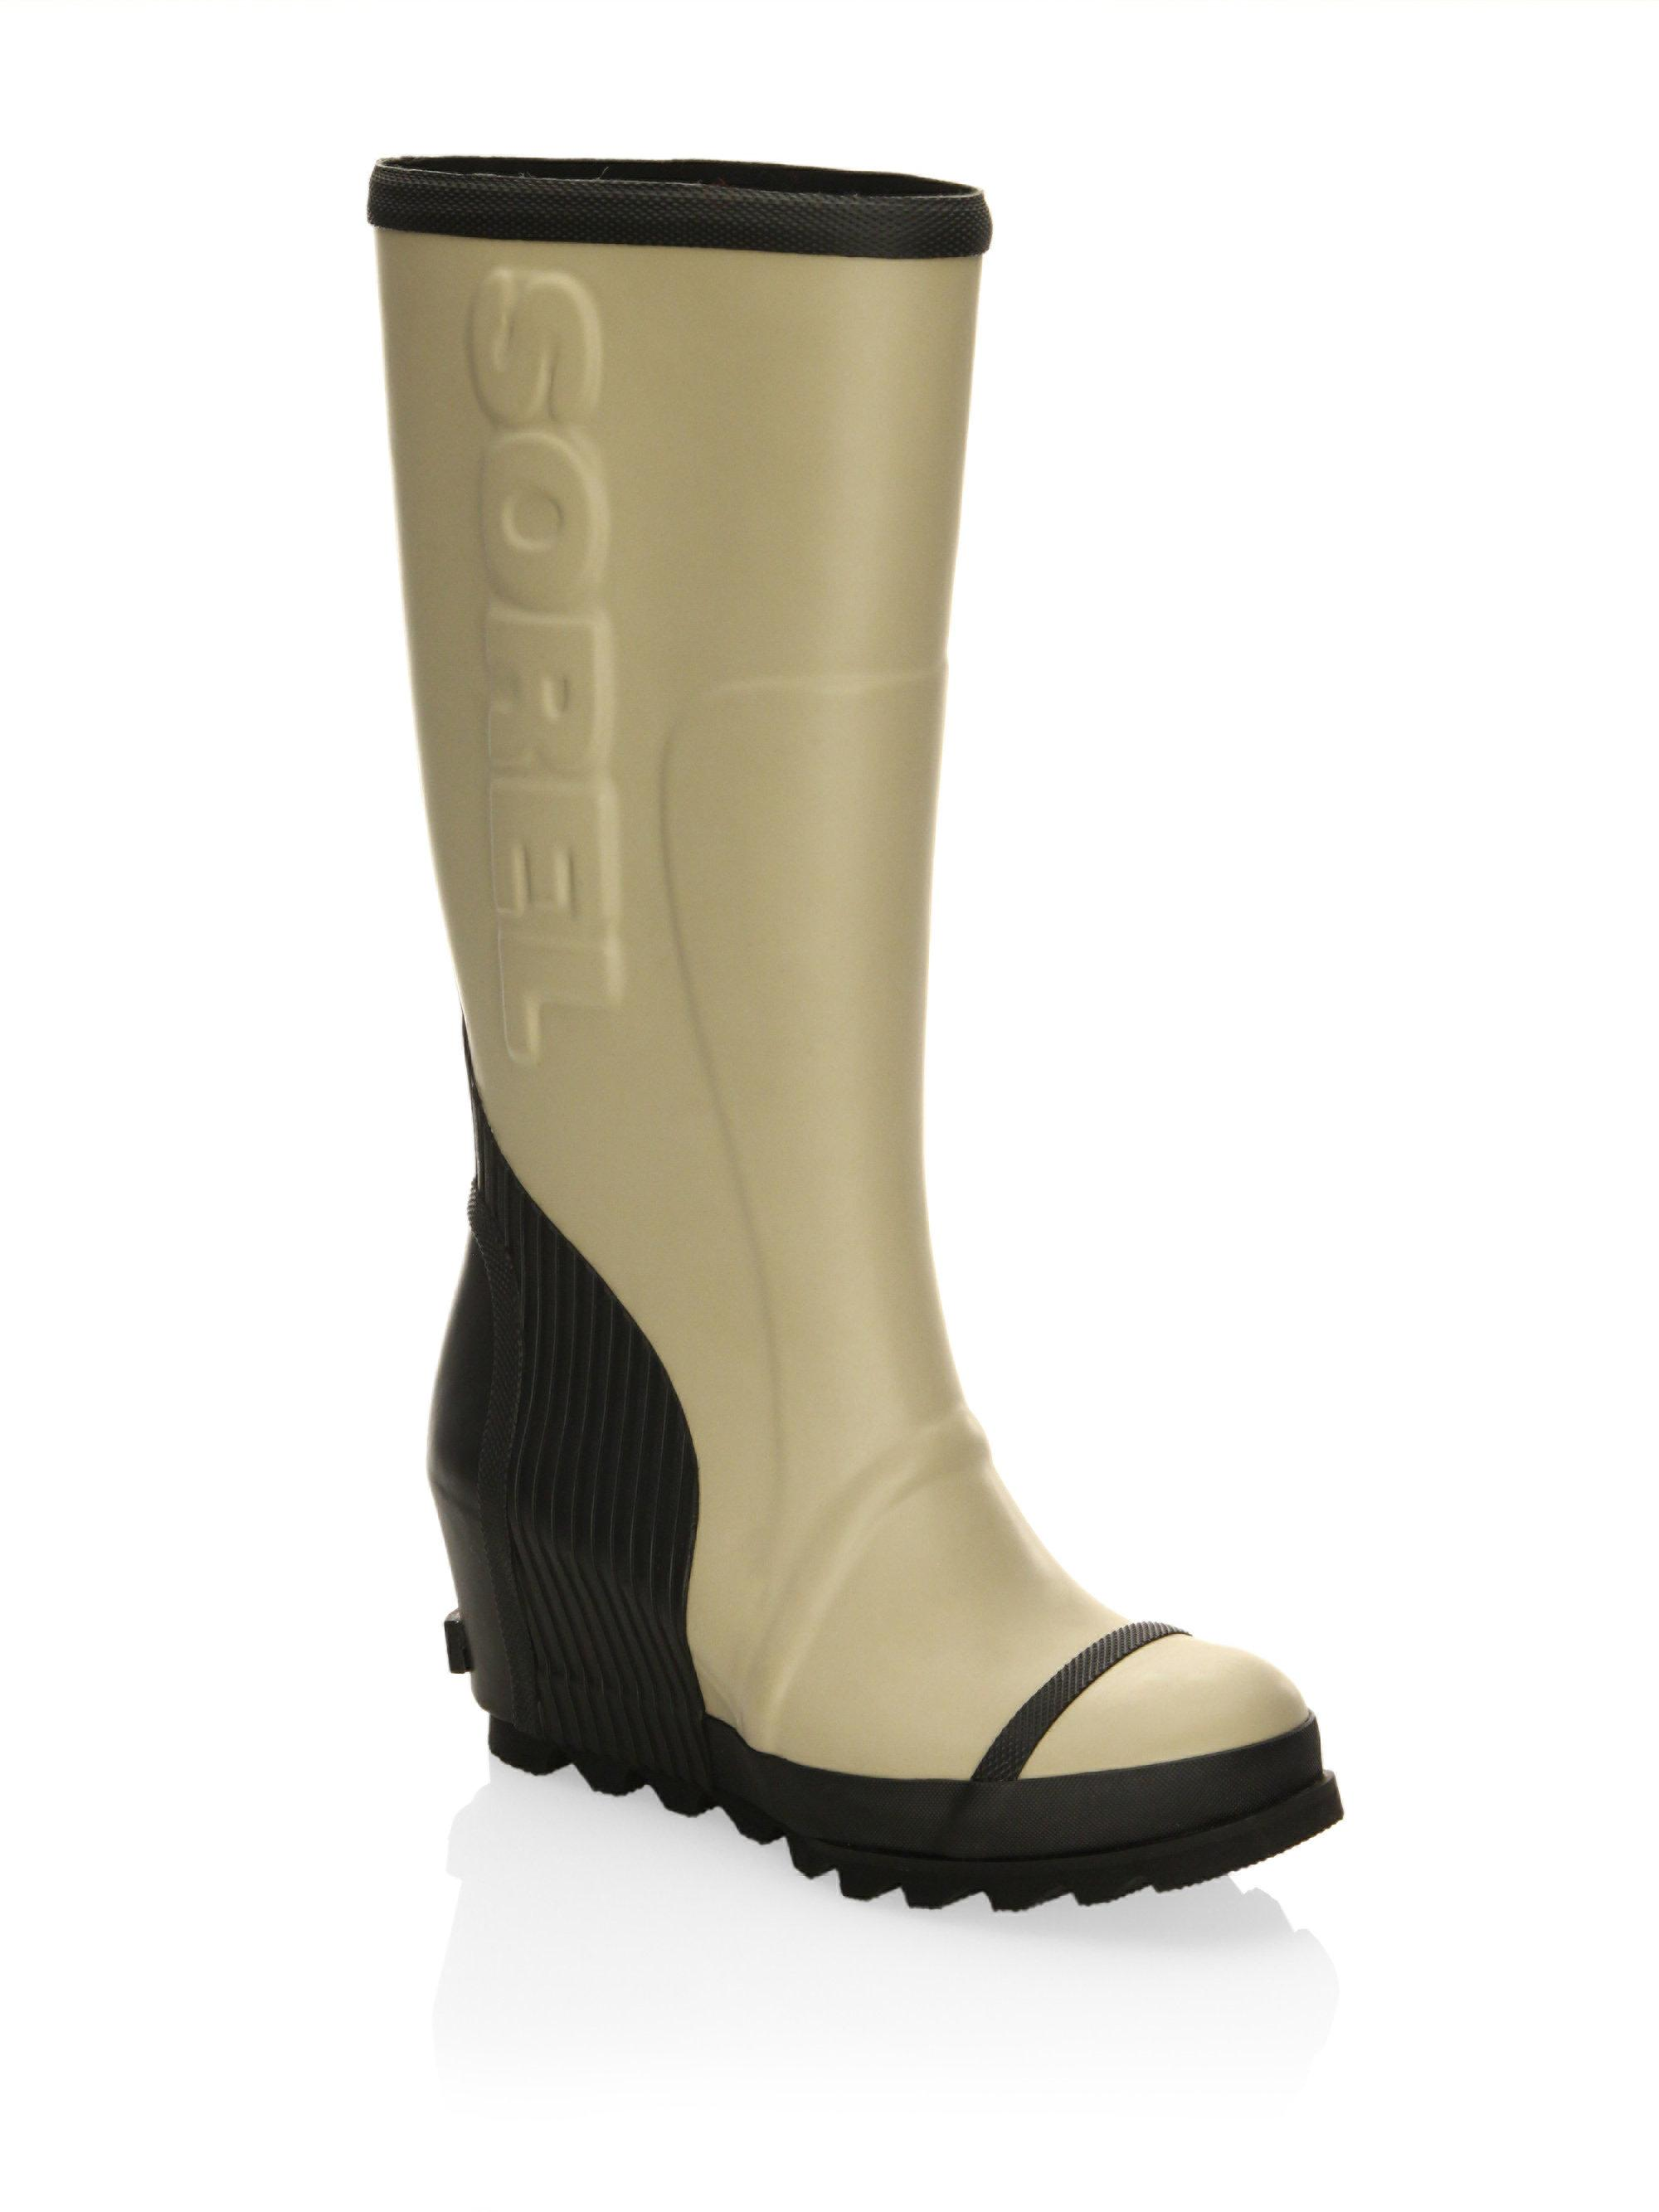 Lyst Sorel Joan Wedge Rubber Rain Boots